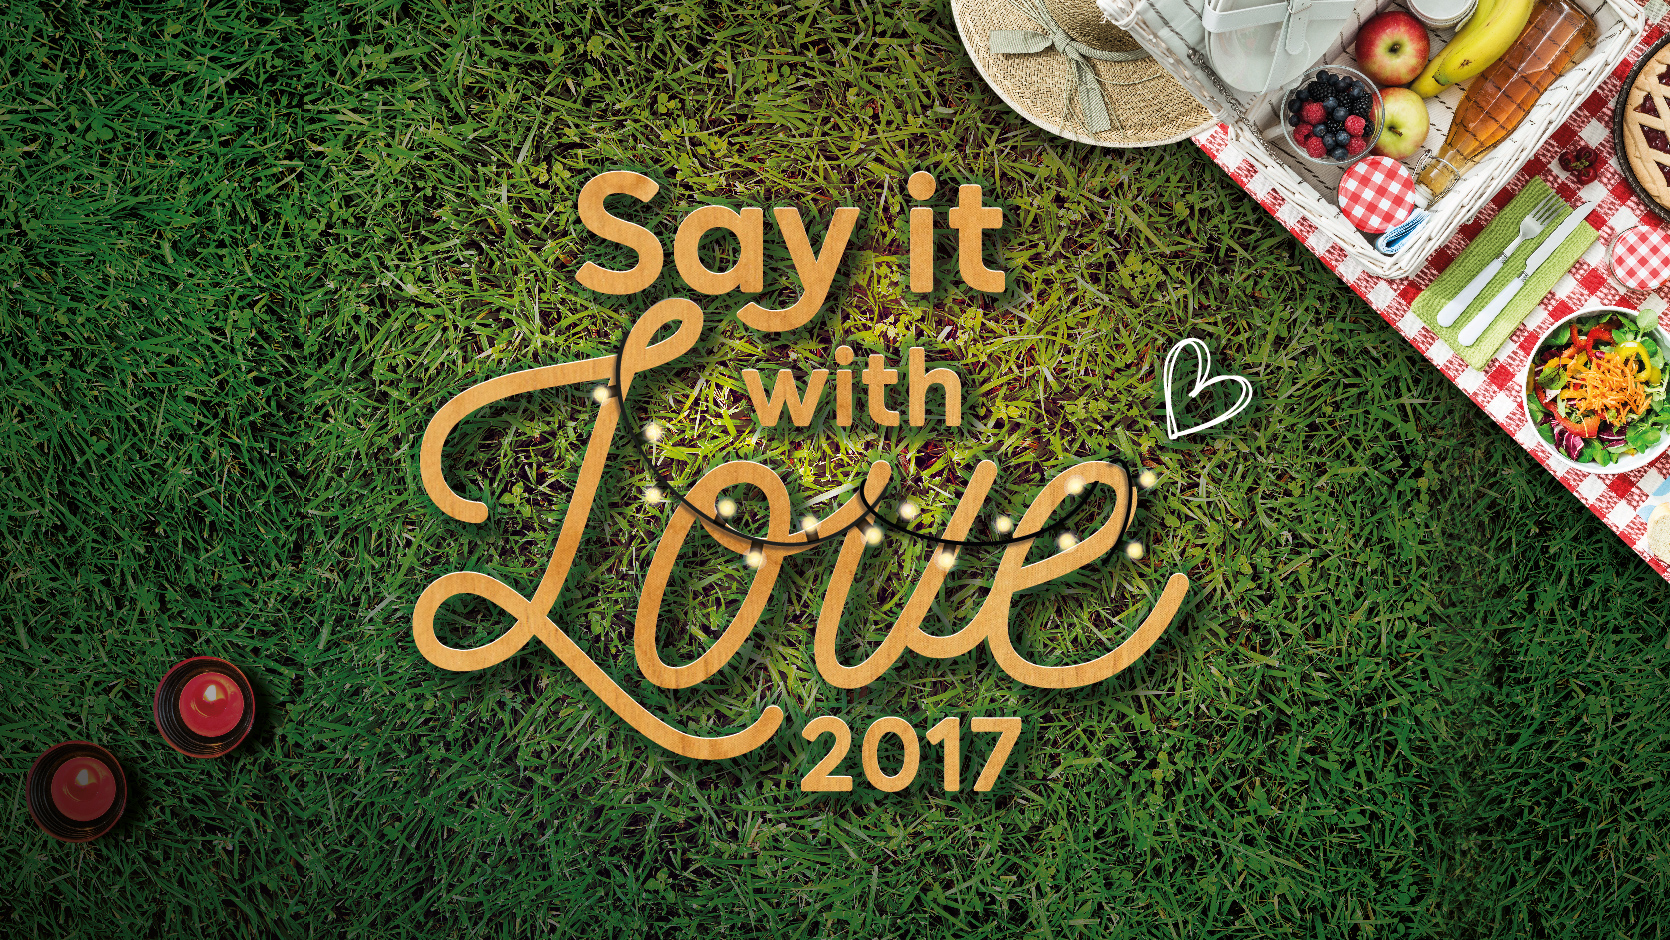 Say it with Love at Gardens by the Bay